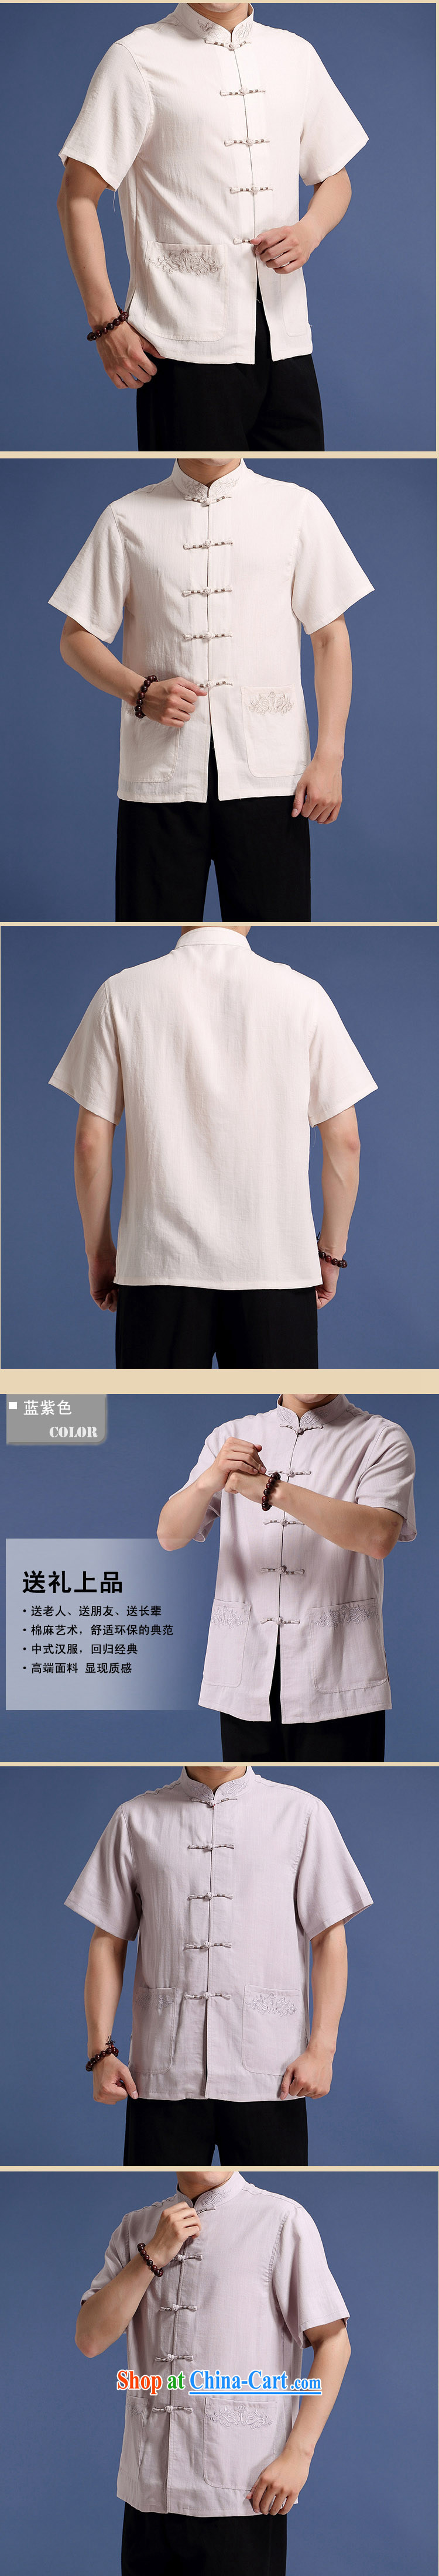 And 3 line summer new upscale and stylish men's short-sleeved embroidery cotton mA short-sleeved T-shirt with short Solid Color embroidery trend of Chinese, for summer short-sleeved Chinese wind embroidery t-shirt white XXXL/190 pictures, price, brand platters! Elections are good character, the national distribution, so why buy now enjoy more preferential! Health